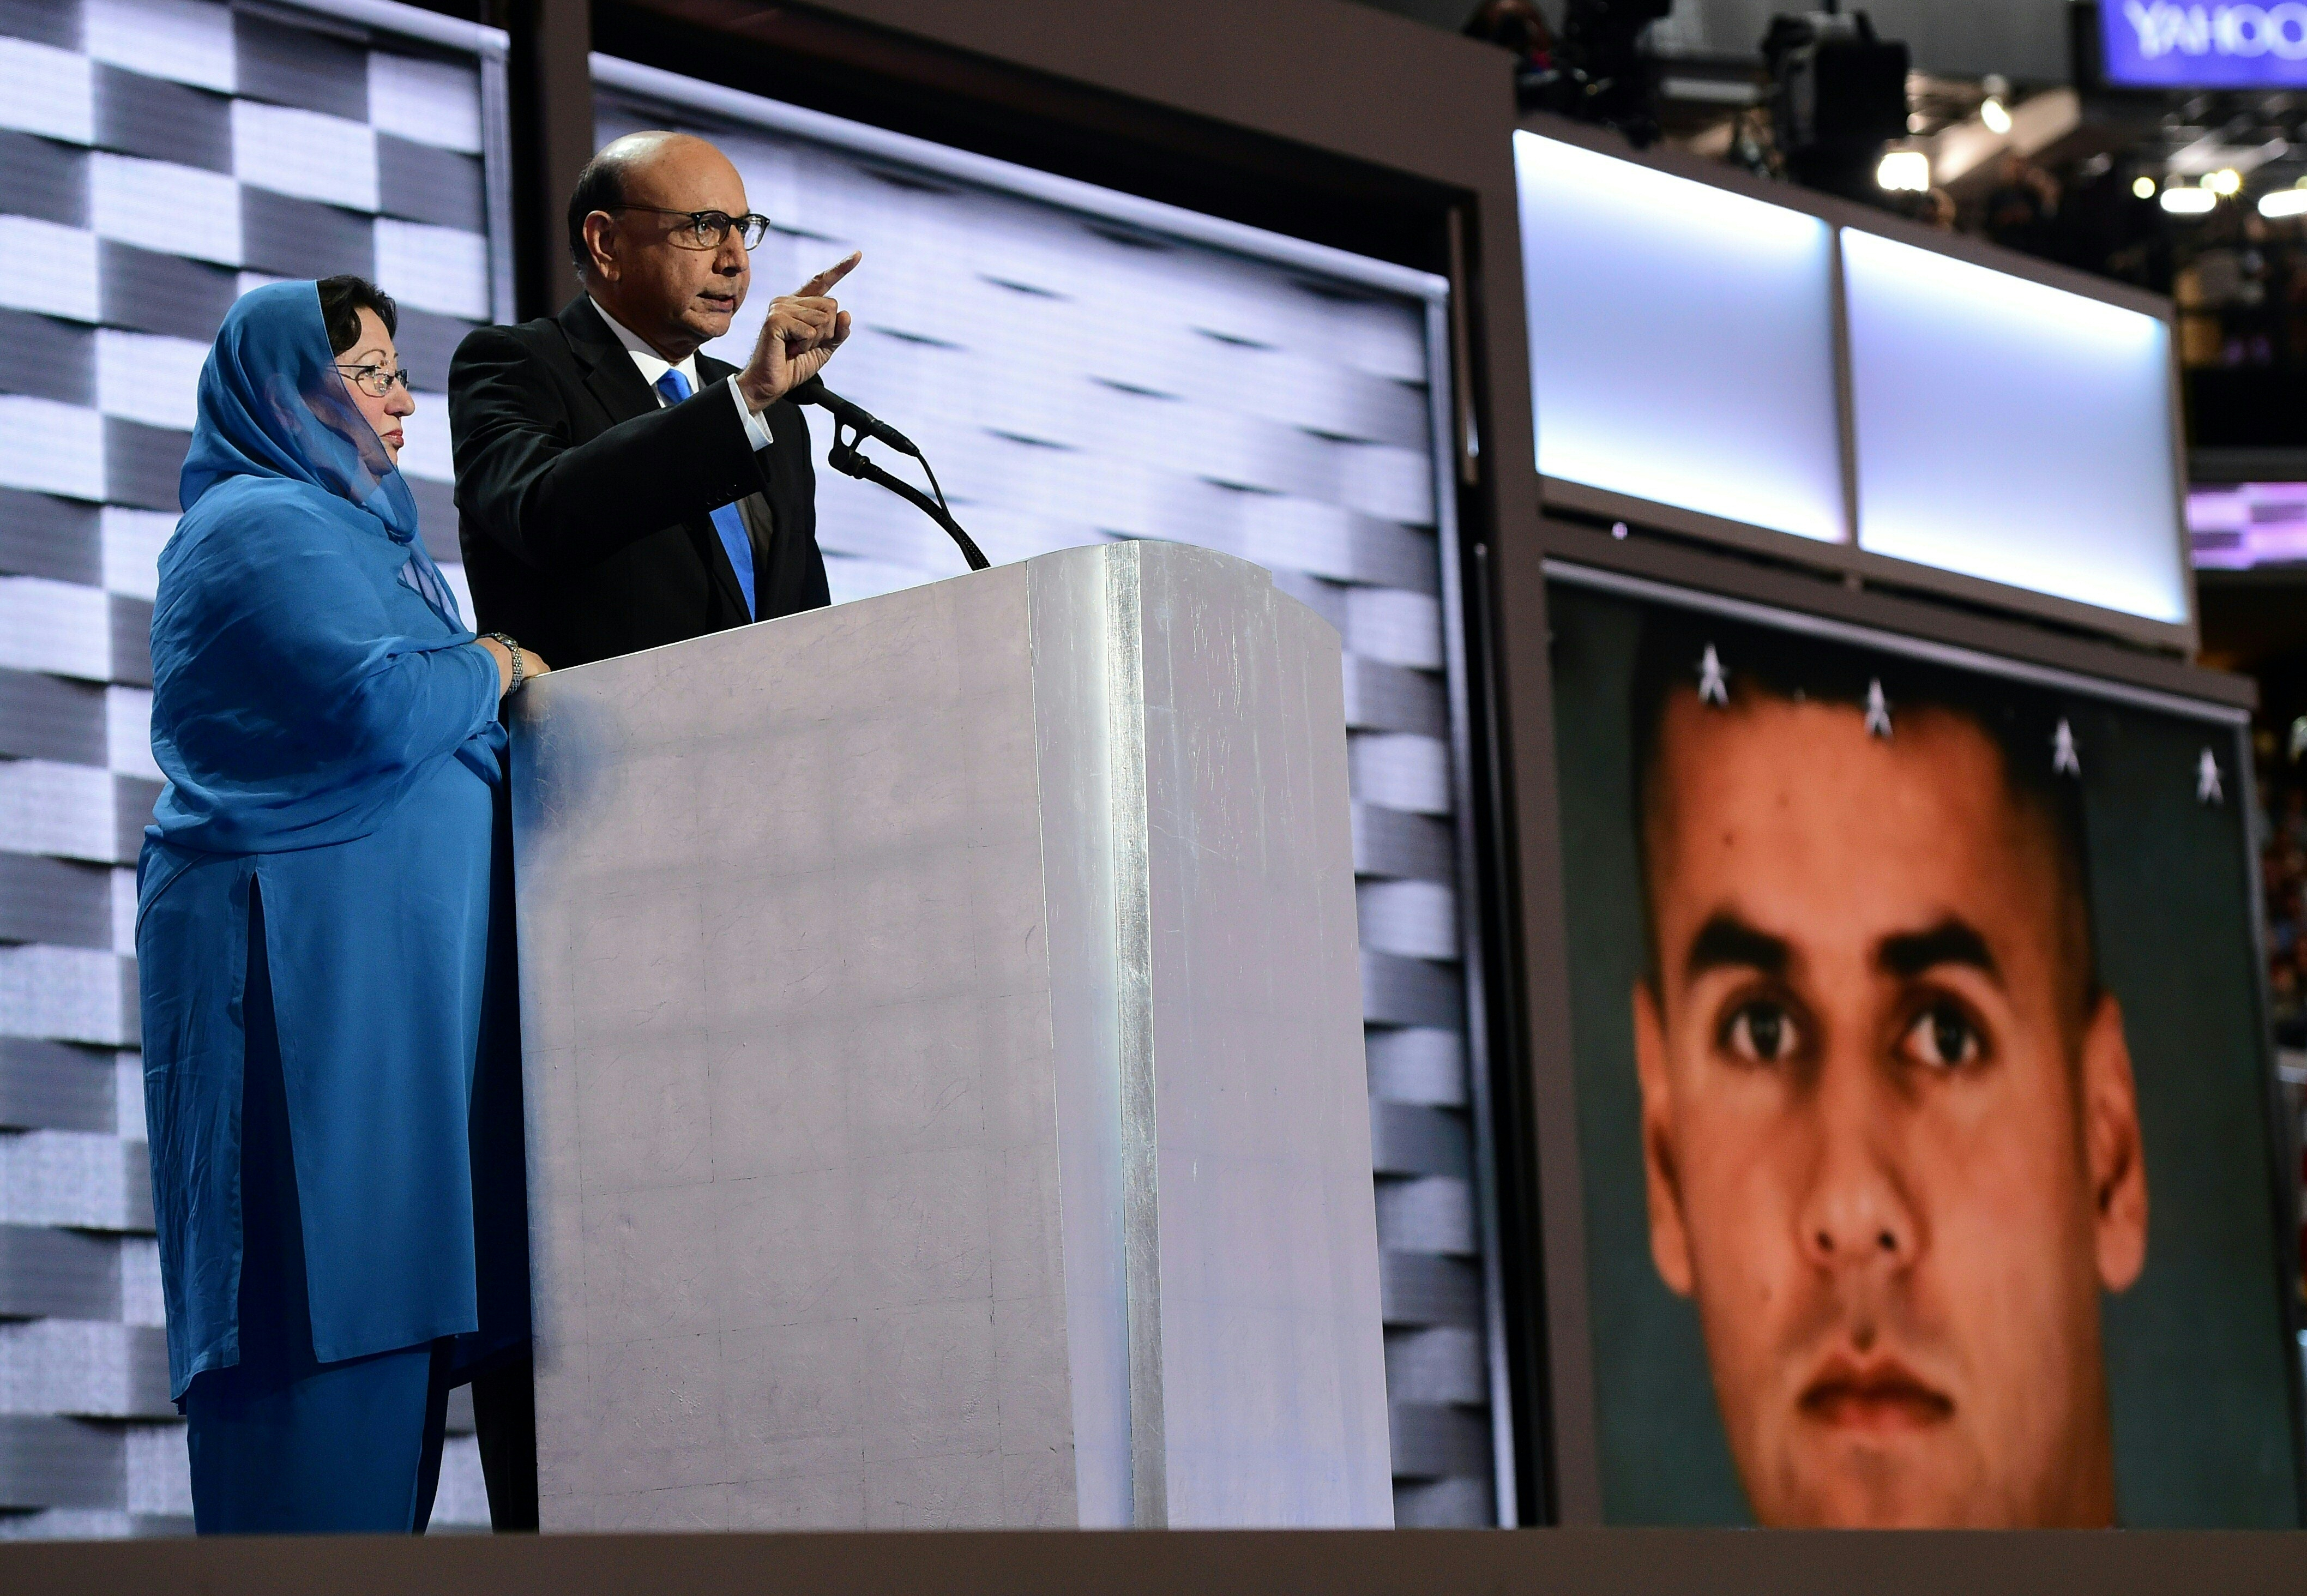 Khizr Khan speaks during the final day of the 2016 Democratic National Convention on July 28, 2016, in Philadelphia, PA.